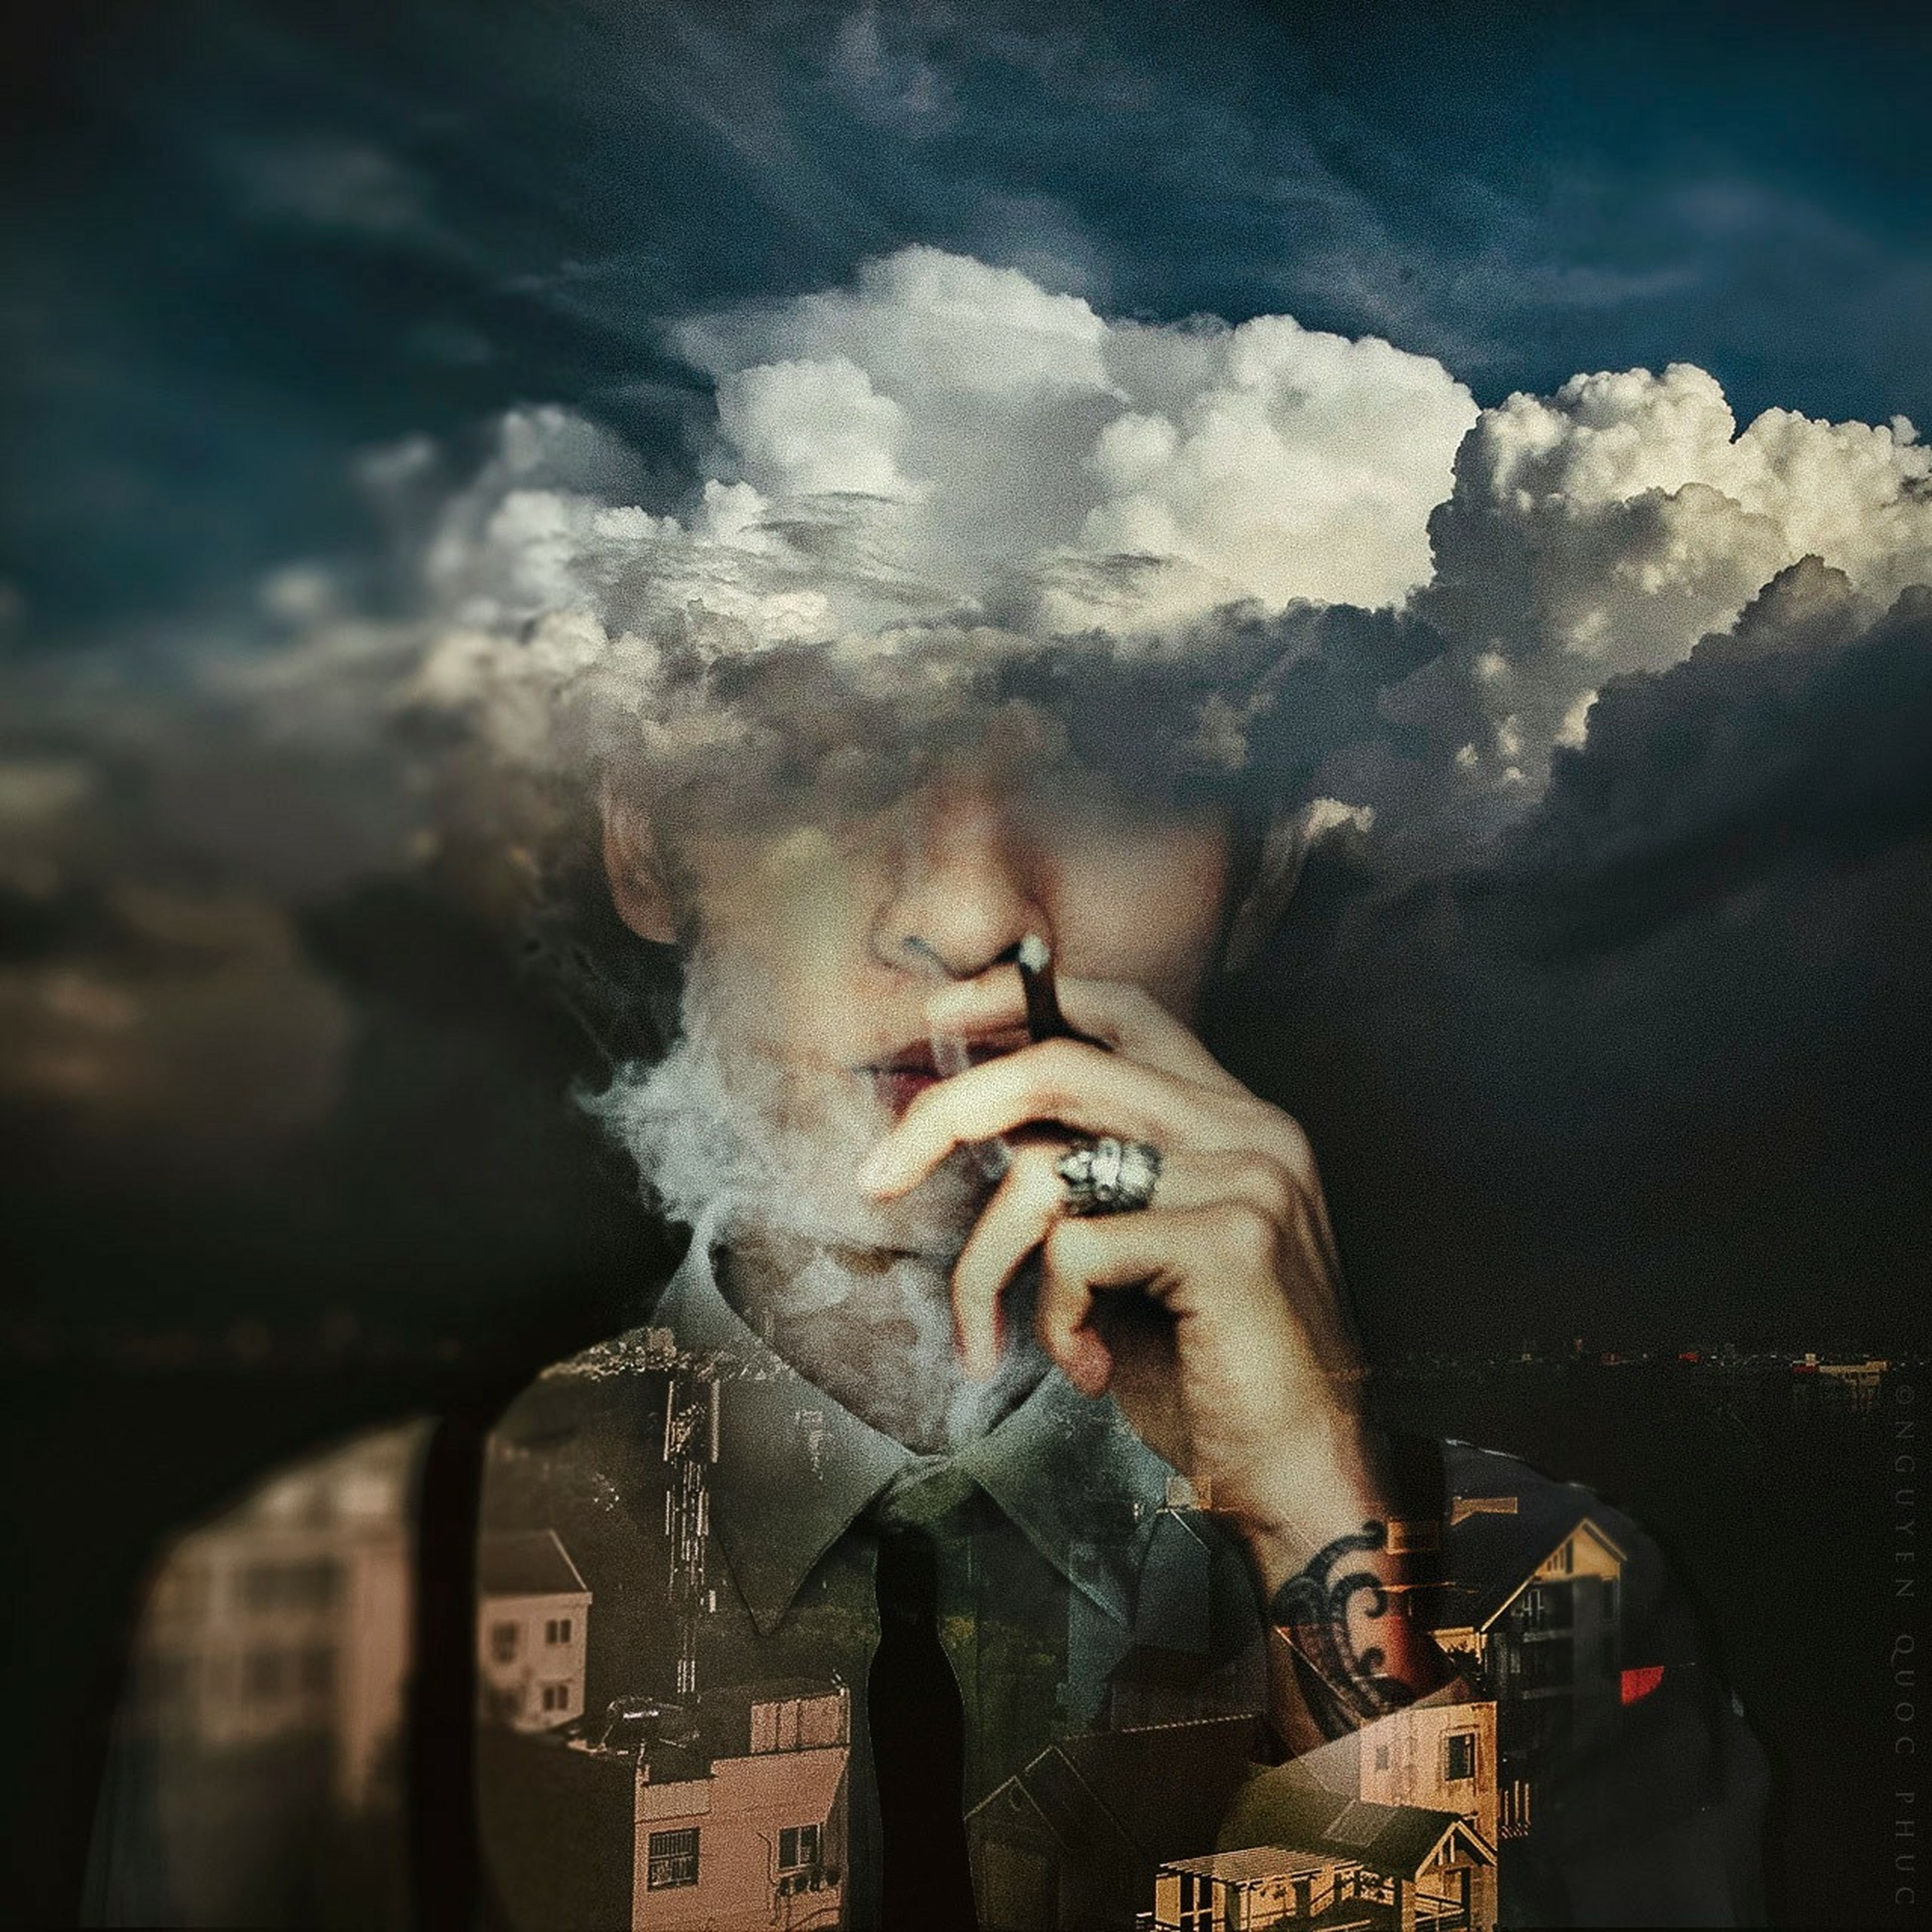 sky, cloud - sky, person, part of, lifestyles, men, leisure activity, cloudy, animal themes, cropped, outdoors, smoke - physical structure, weather, unrecognizable person, low angle view, danger, smoke